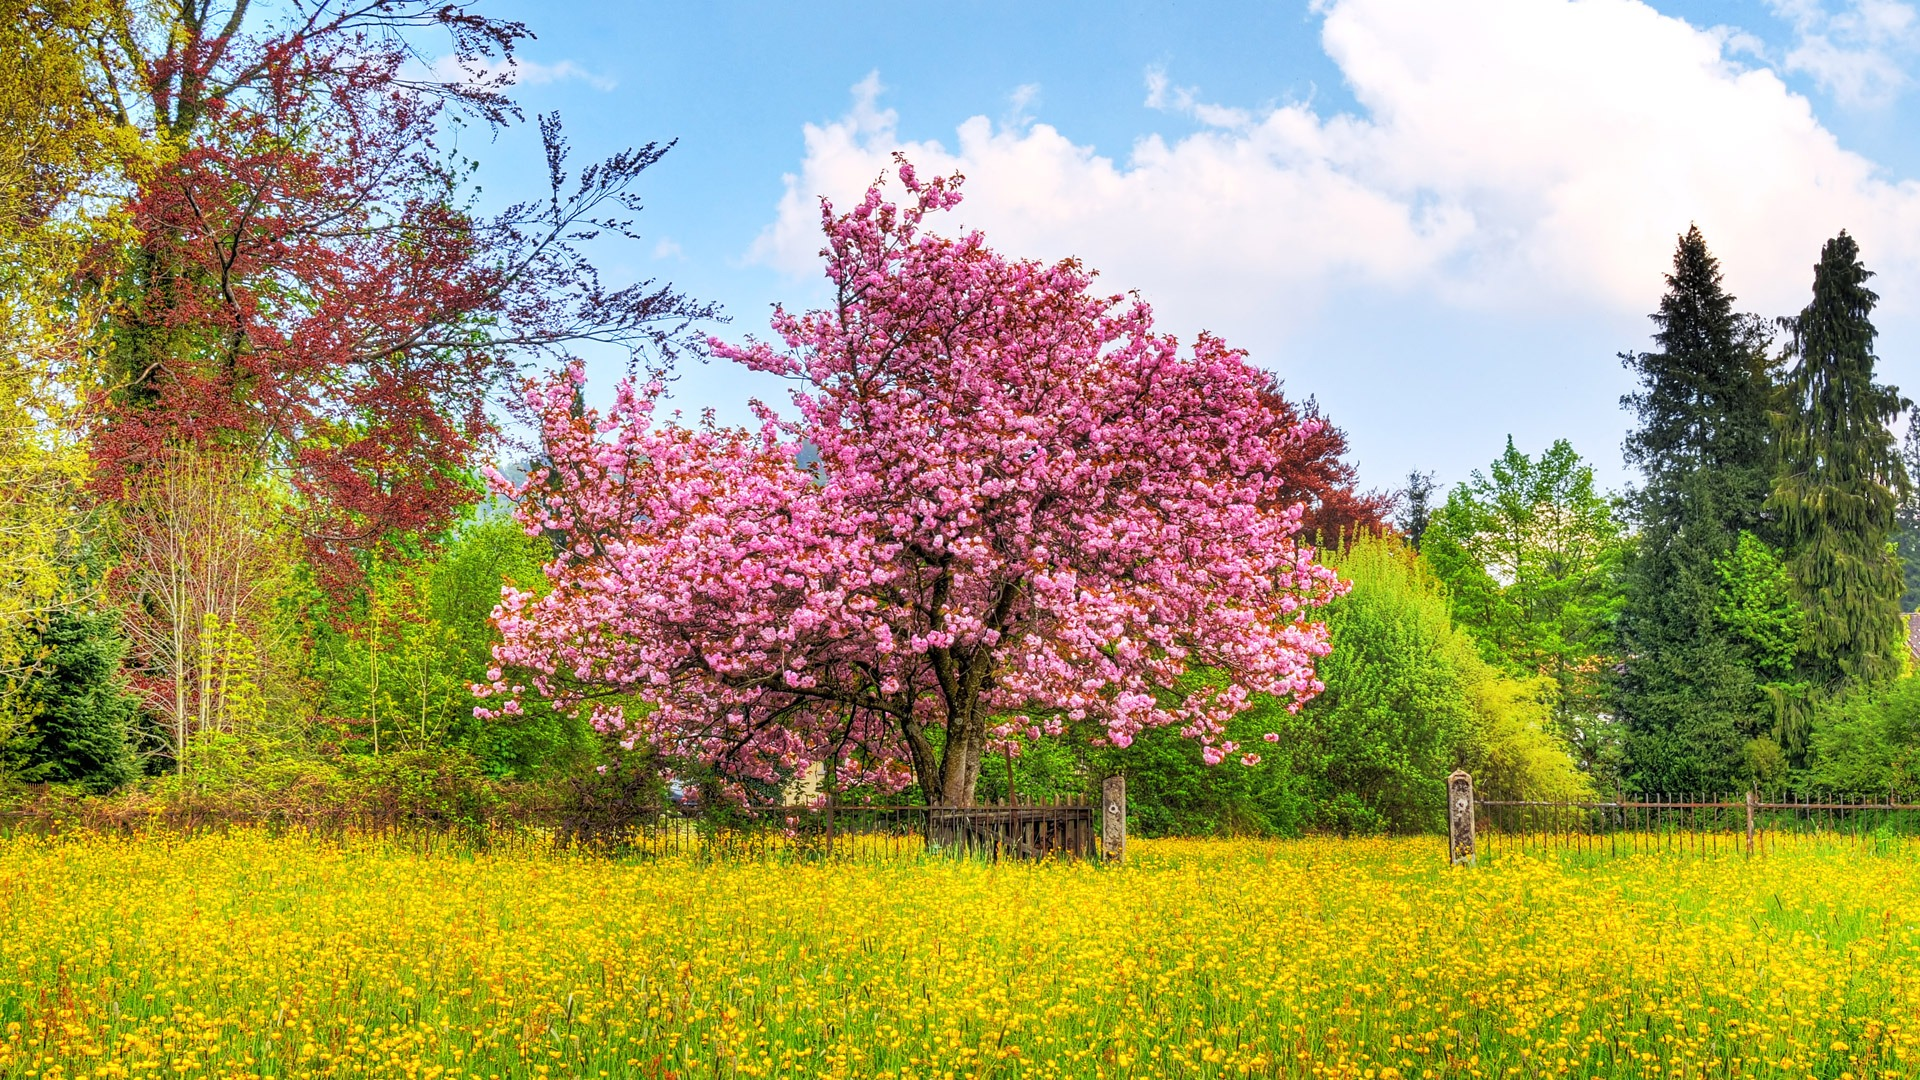 cherry tree wallpaper plants nature wallpapers in jpg format for free download